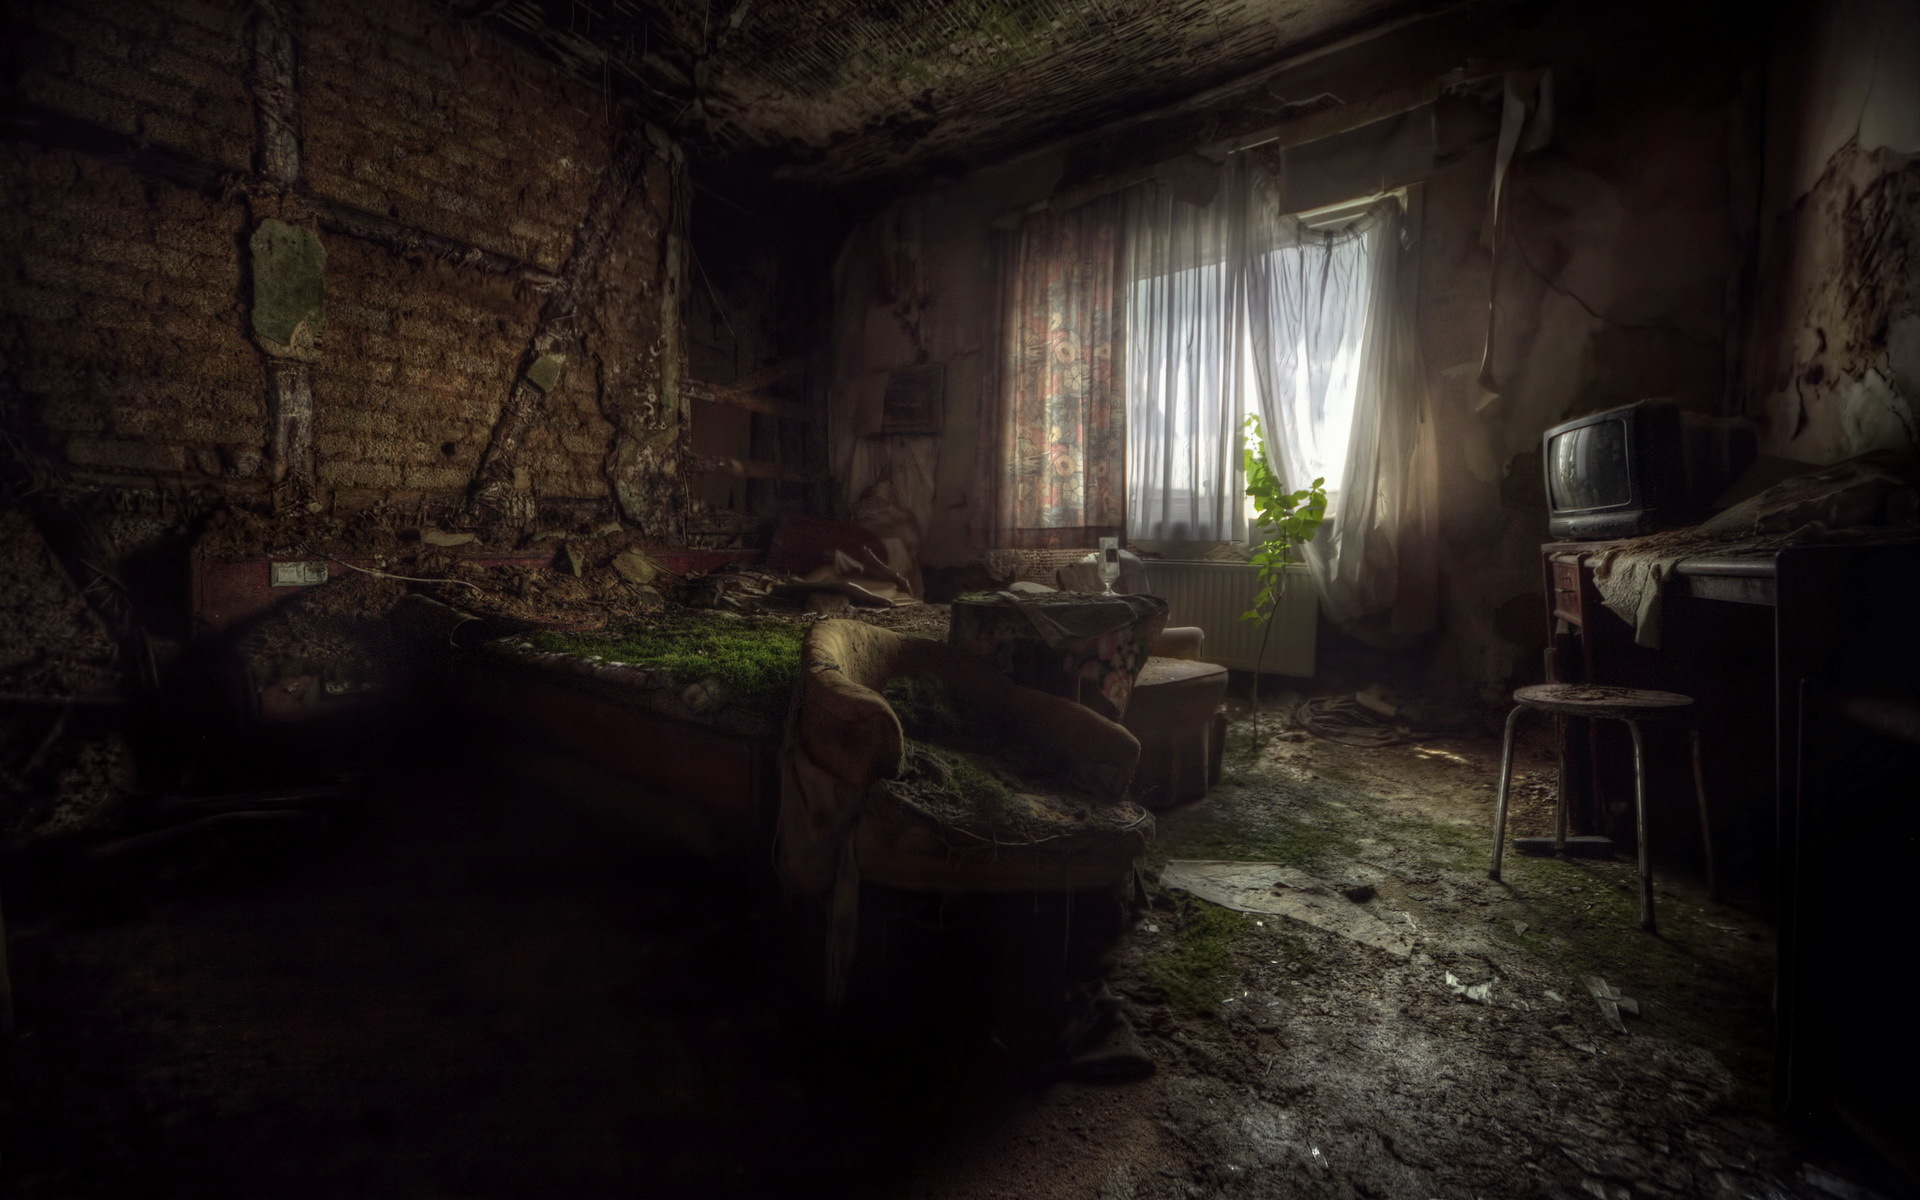 Download Wallpaper Horror Another Room Decayed Buildings